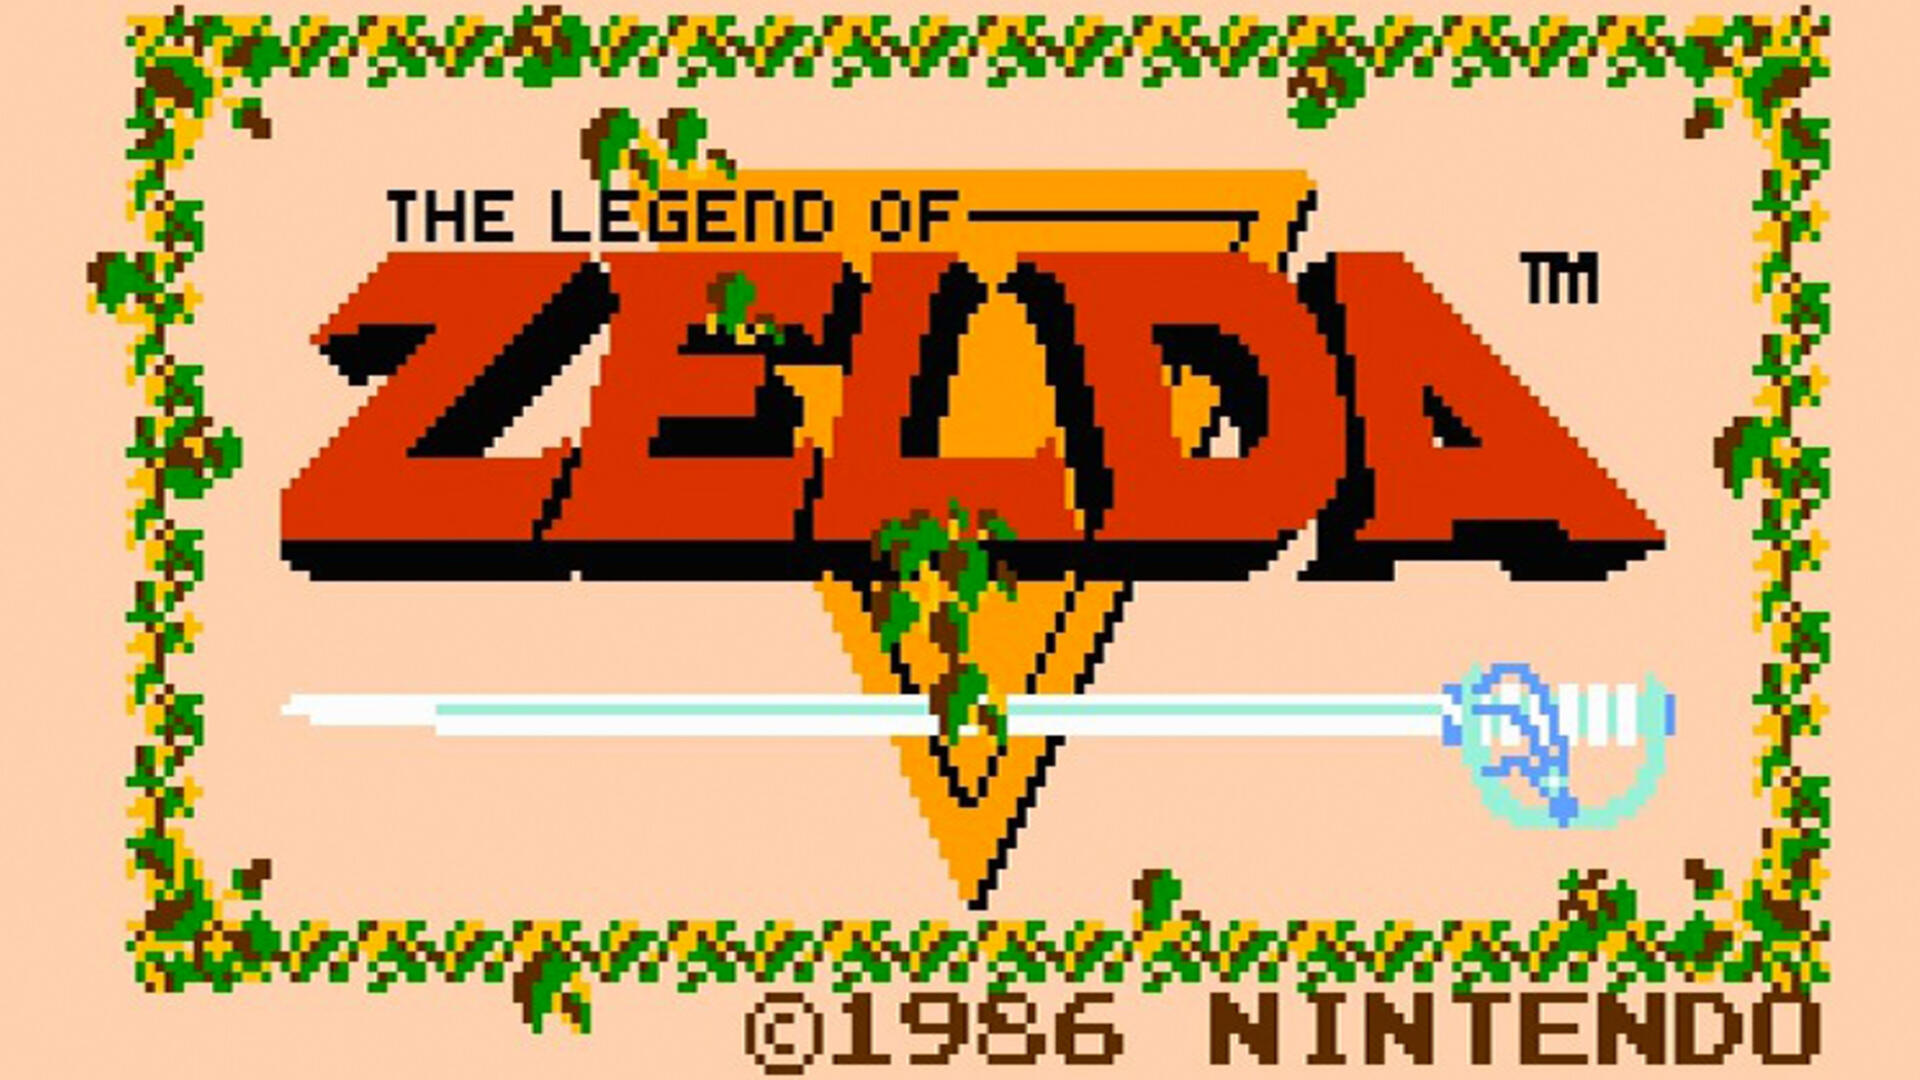 Long Time Coming: Finishing the Original Legend of Zelda in 2016